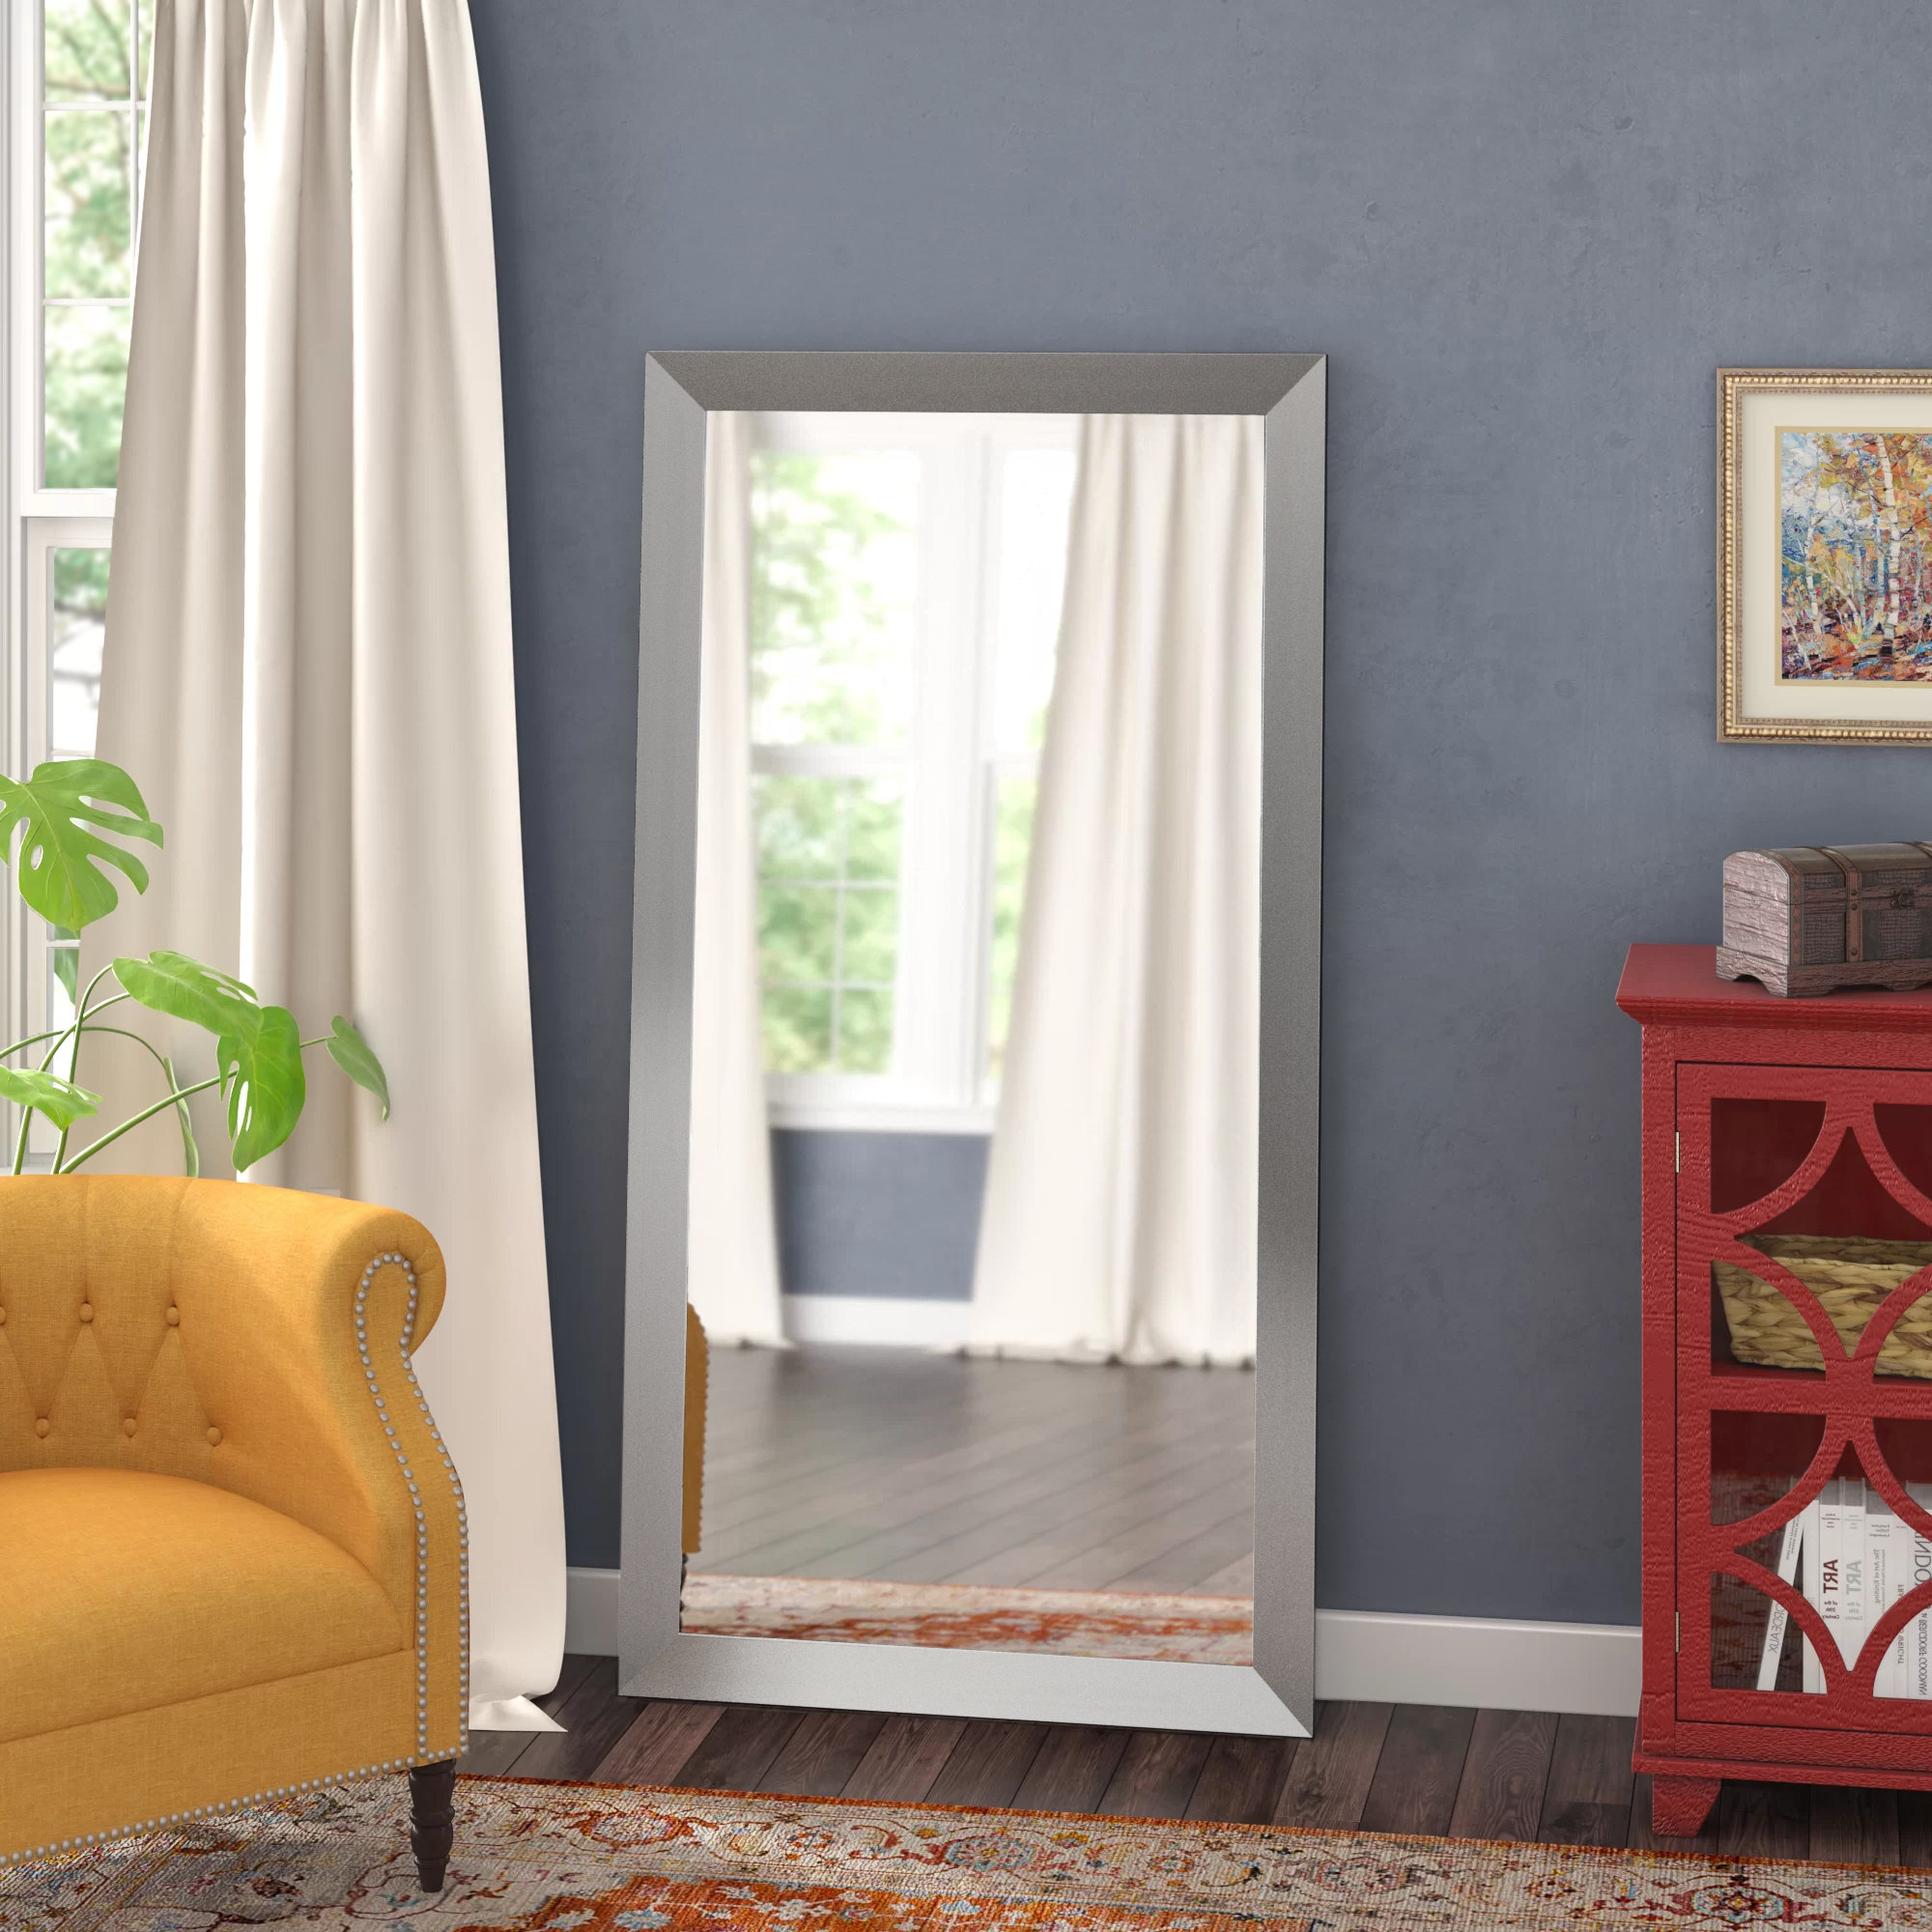 Latest Hogge Modern Brushed Nickel Large Frame Wall Mirrors Intended For Hogge Full Length Mirror (View 5 of 20)